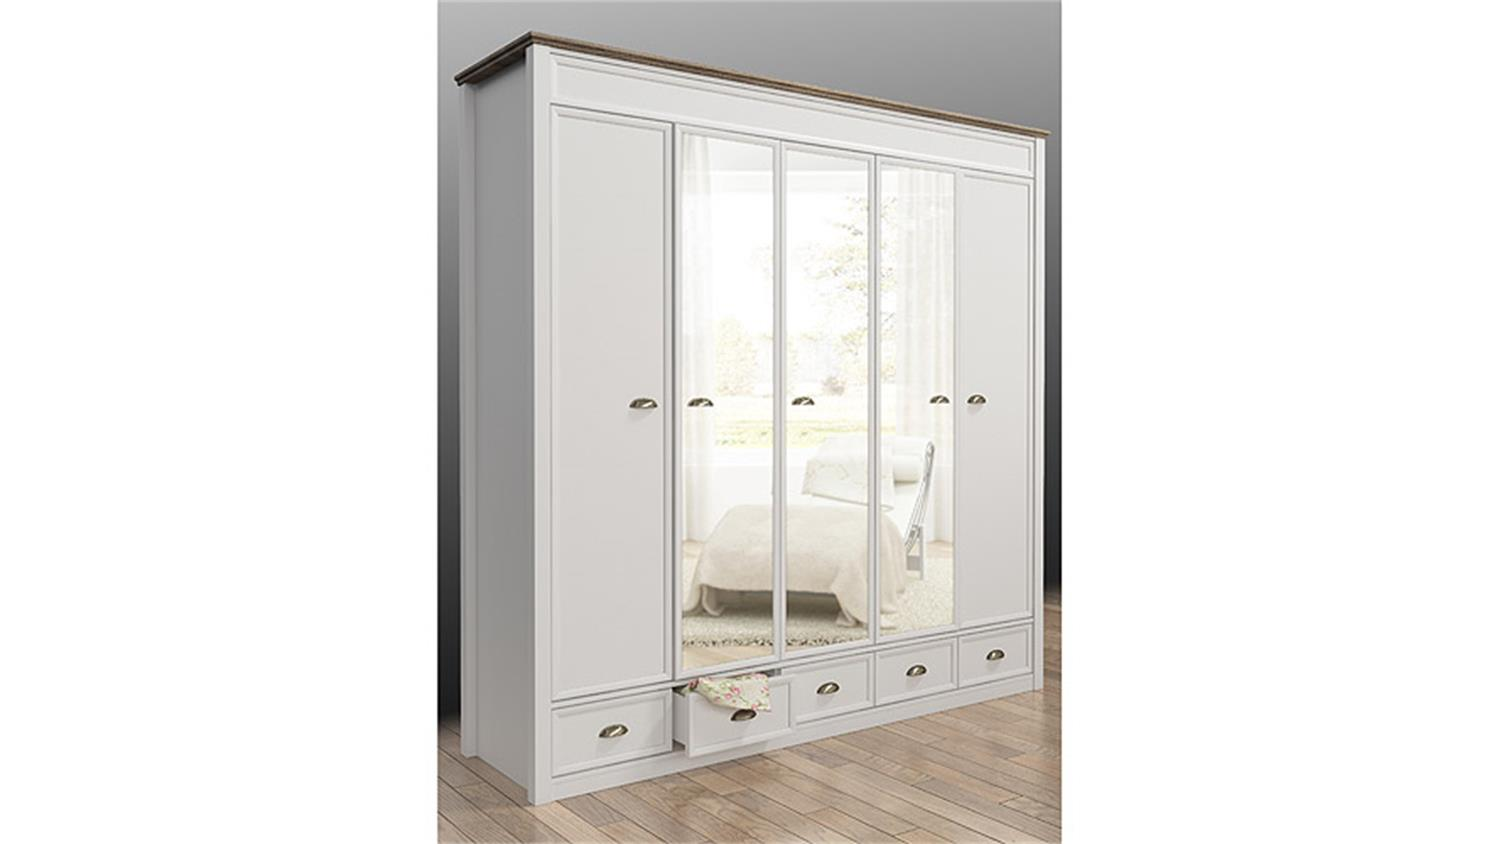 kleiderschrank chateau in wei und san remo eiche 220 cm. Black Bedroom Furniture Sets. Home Design Ideas